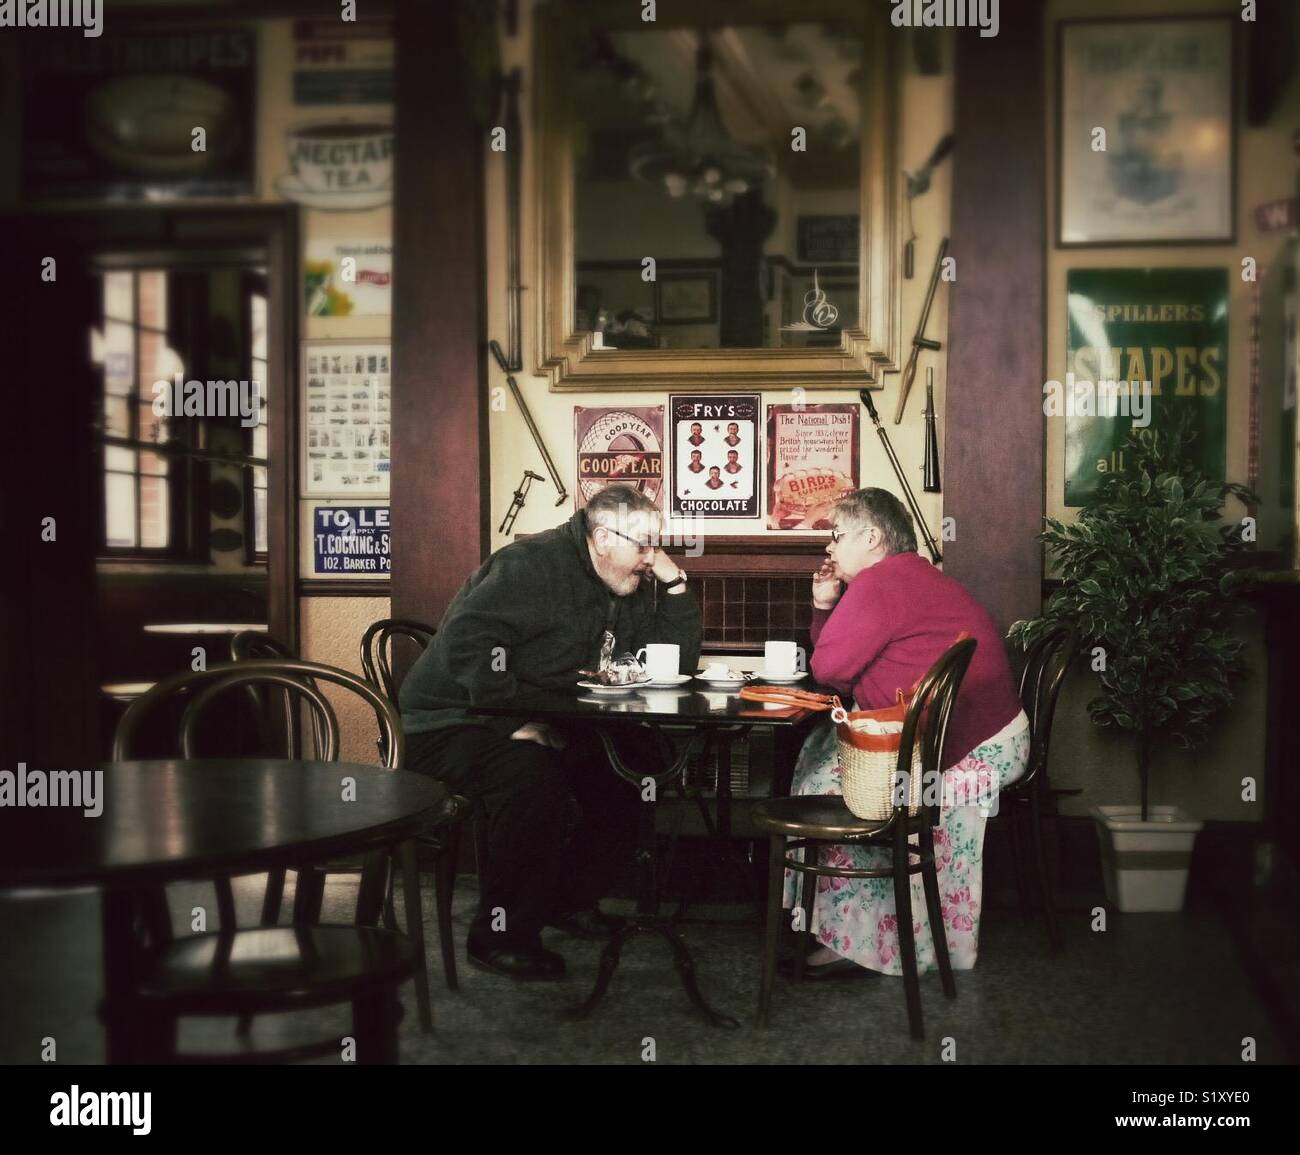 Couple having a cup of tea and a conversation in the Station Cafe, Bridlington, East Yorkshire, England, UK Stock Photo